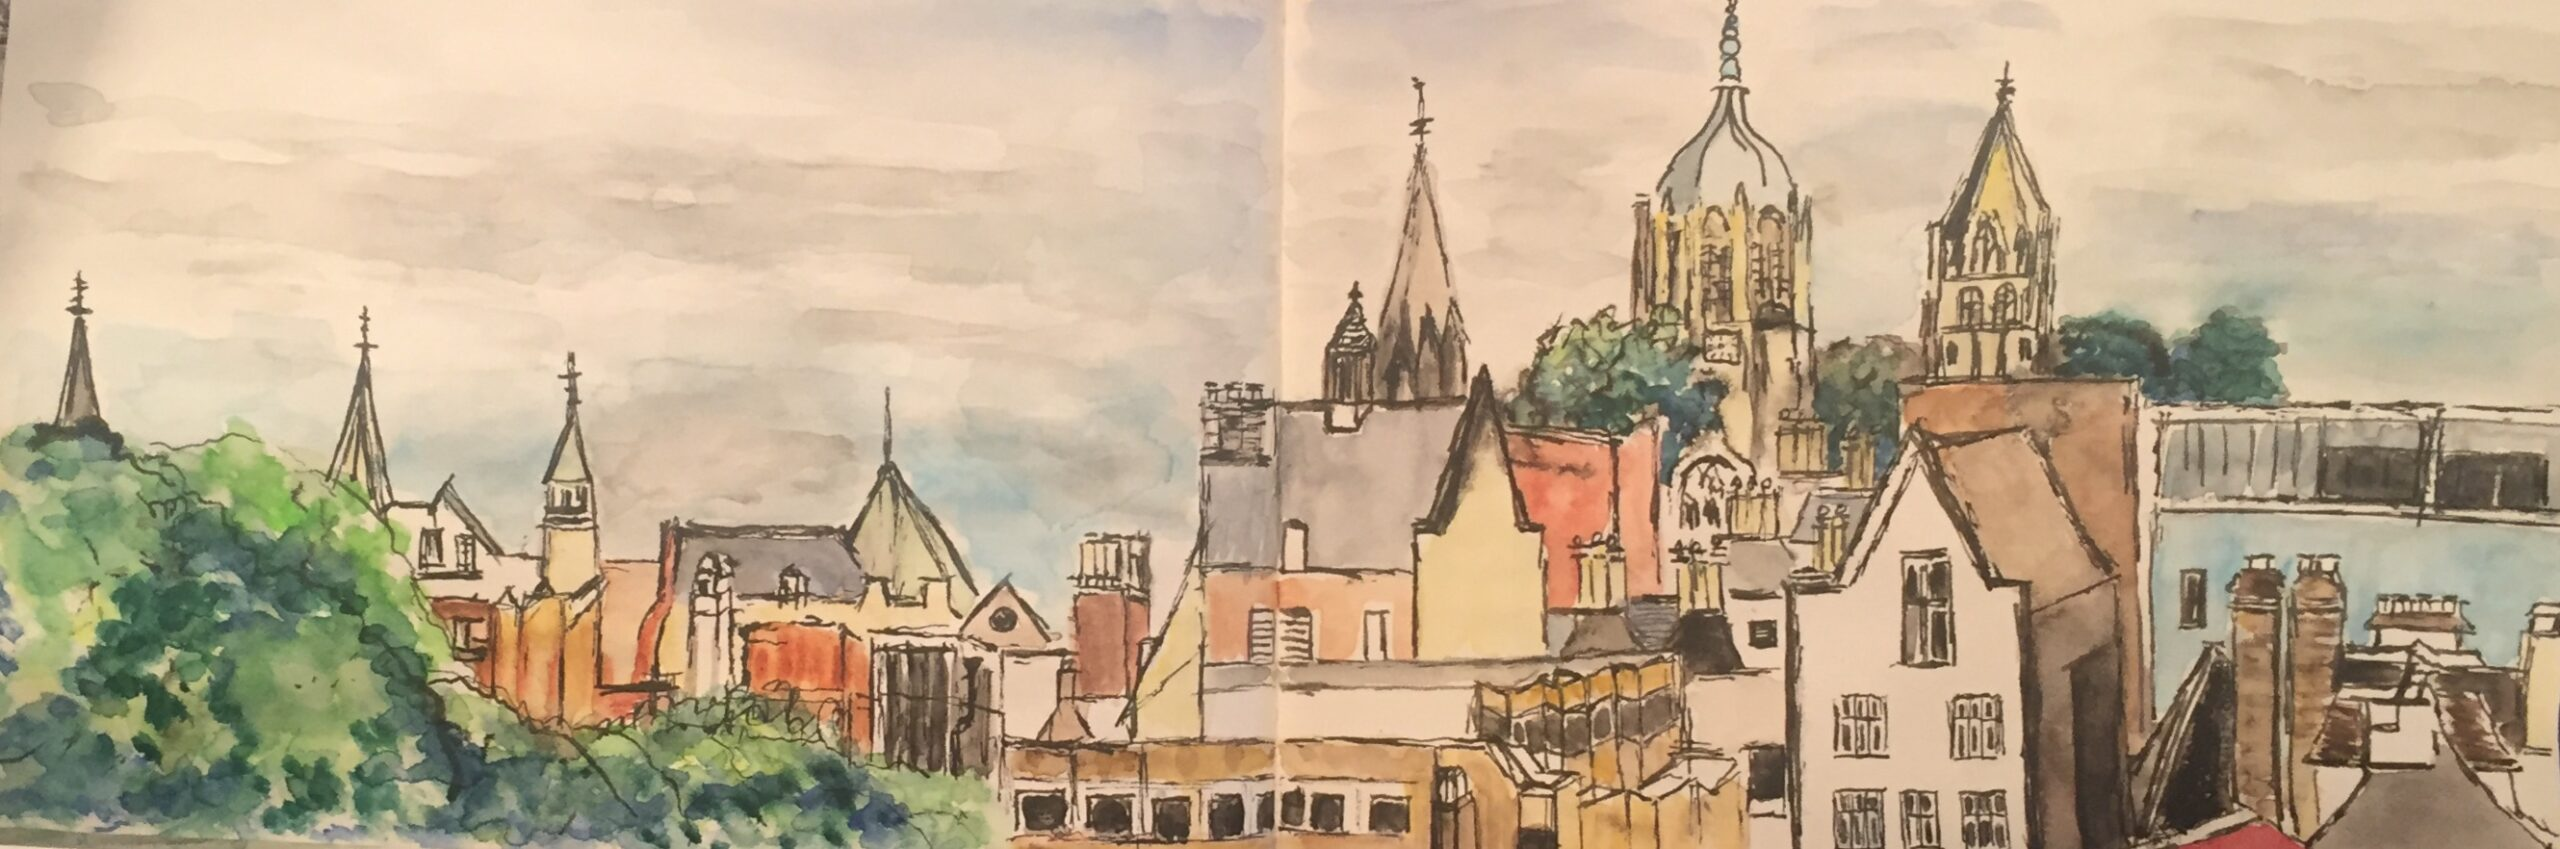 Watercolour painting of The Oxford city Skyline from Westgate